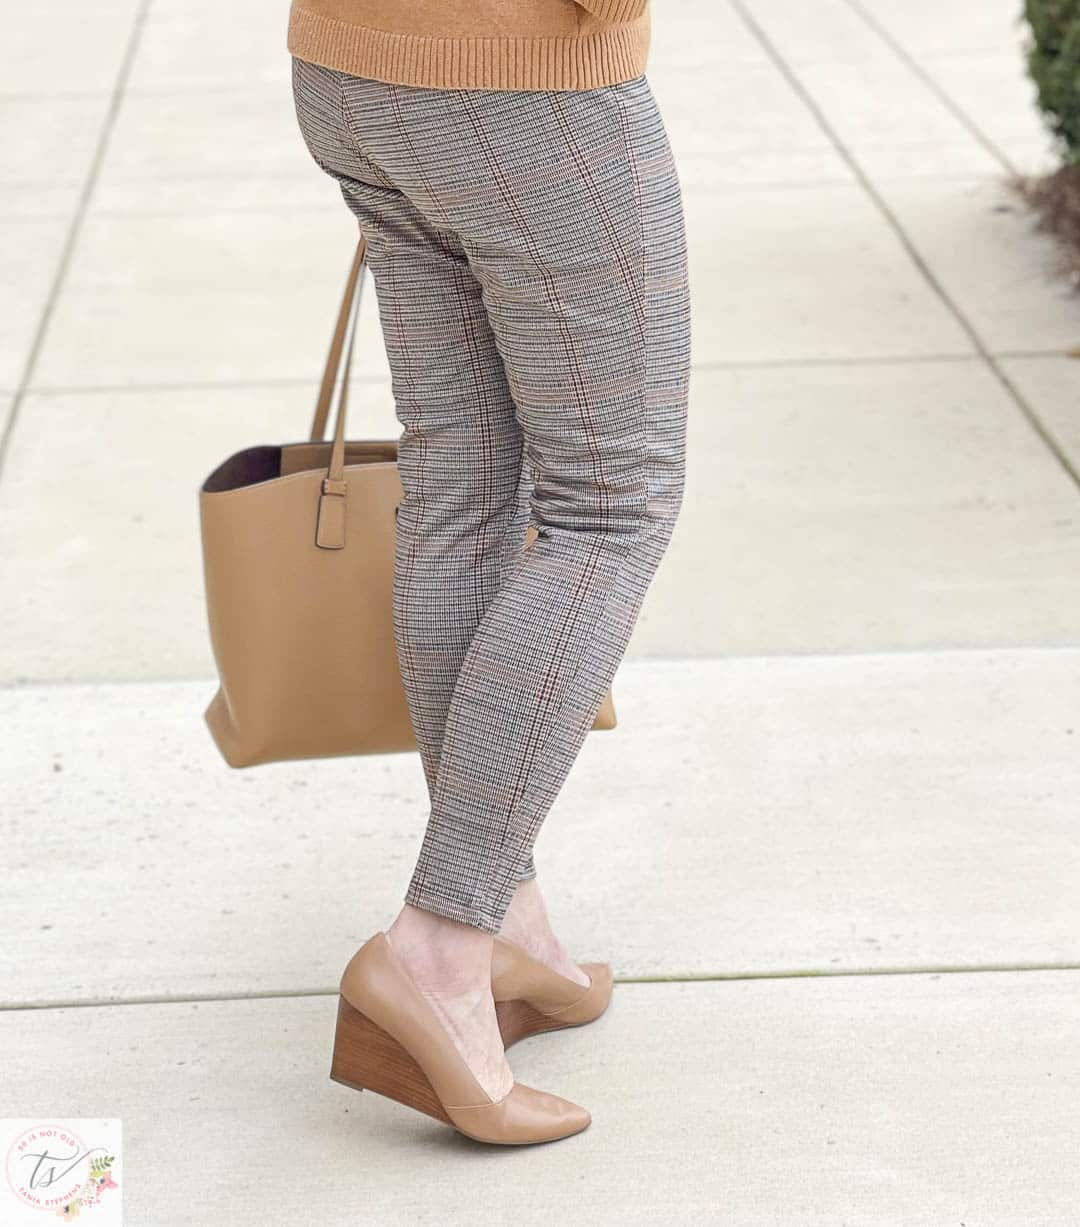 Over 40 Fashion Blogger, Tania Stephens, is wearing a pair plaid Ponte knit pants and taupe wedges